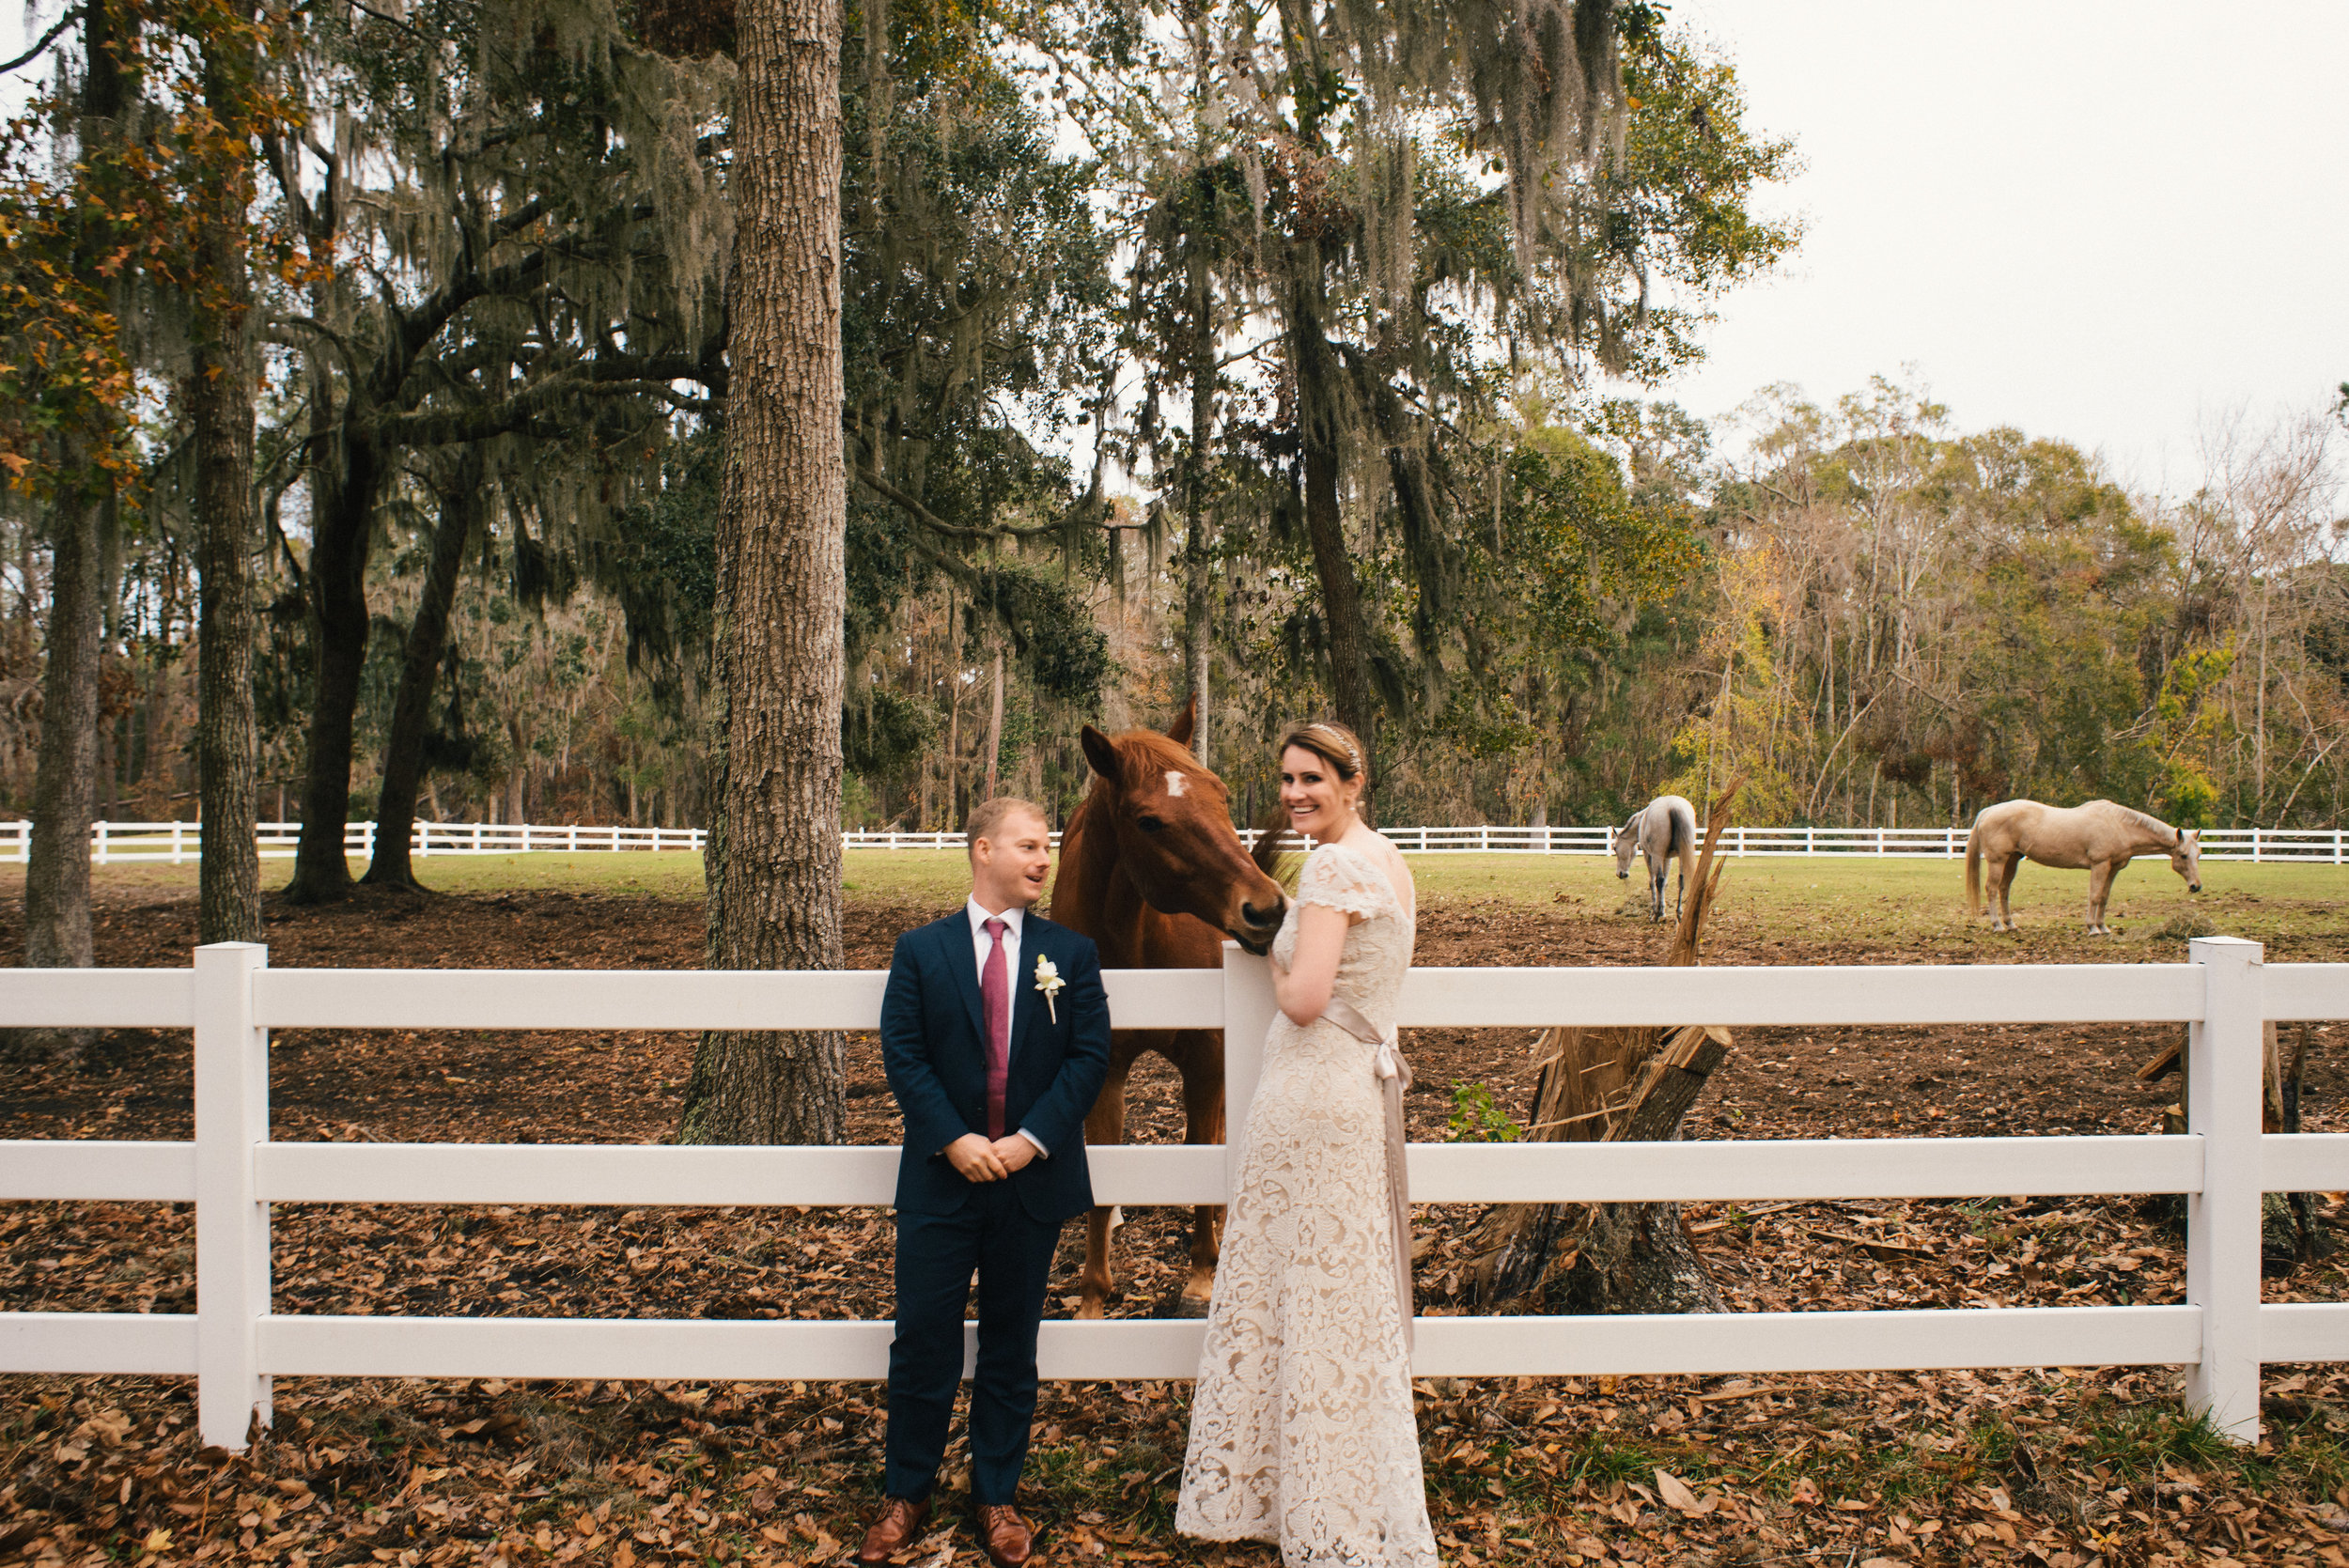 emily-and-david-daufuskie-island-wedding-december-wedding-meg-hill-photo- (175 of 728).jpg